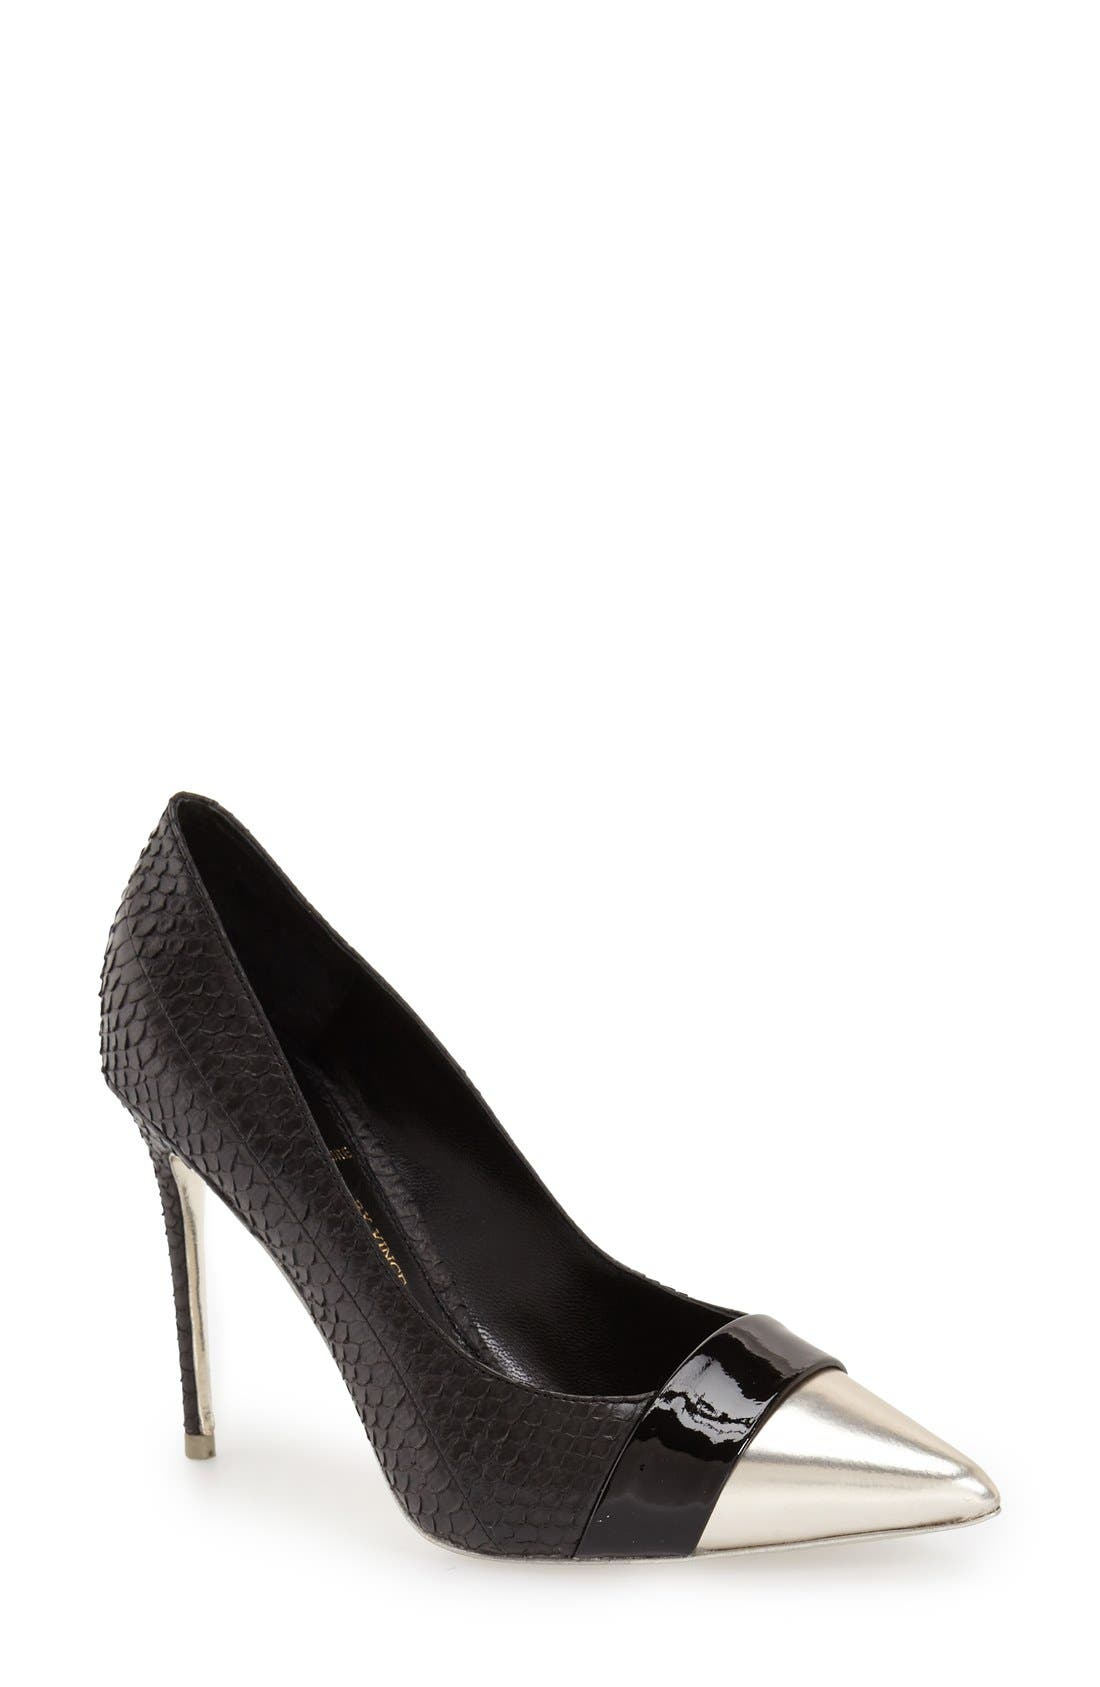 Alternate Image 1 Selected - VC Signature 'Ville' Pointy Toe Pump (Women)